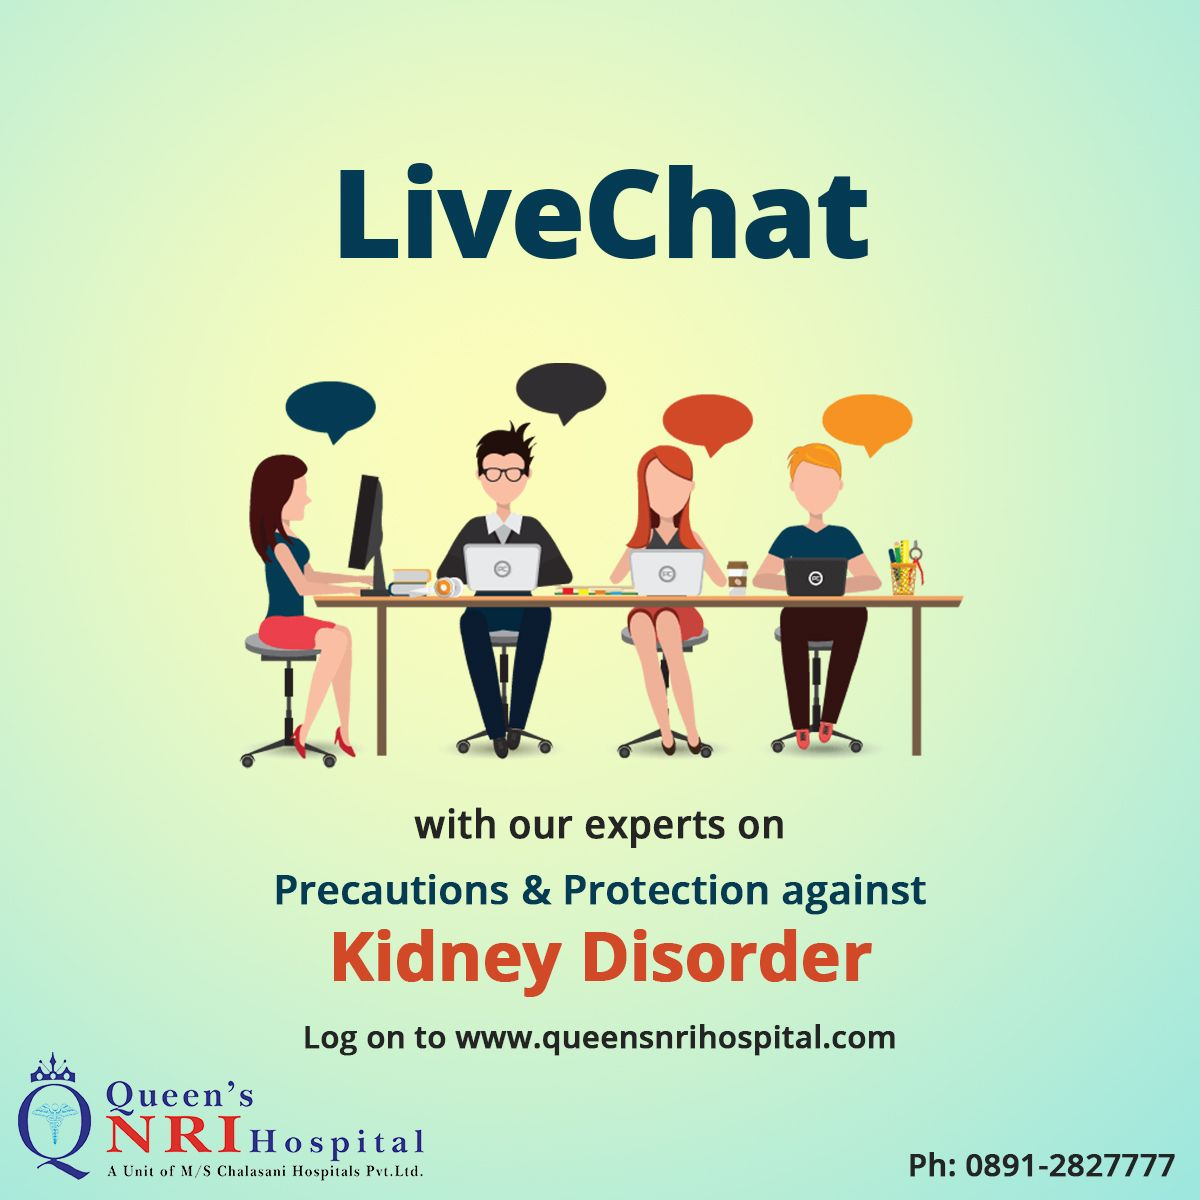 Live chat with our experts on precautions u protection against